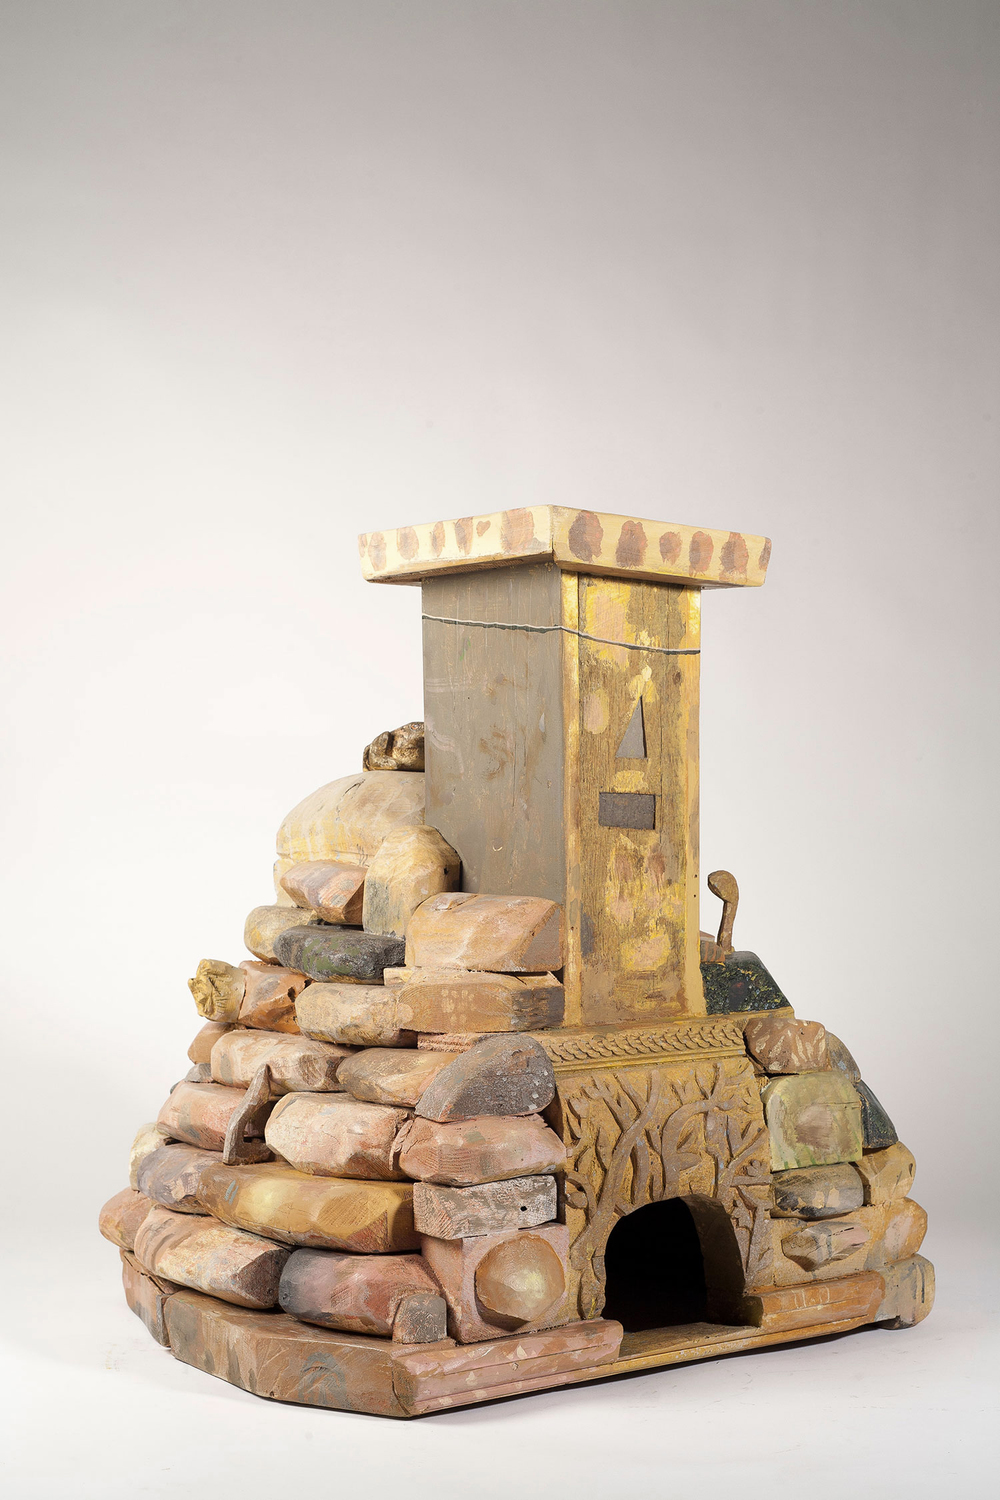 Bread oven, wood and paint, 26x24x26 inches, 2016.